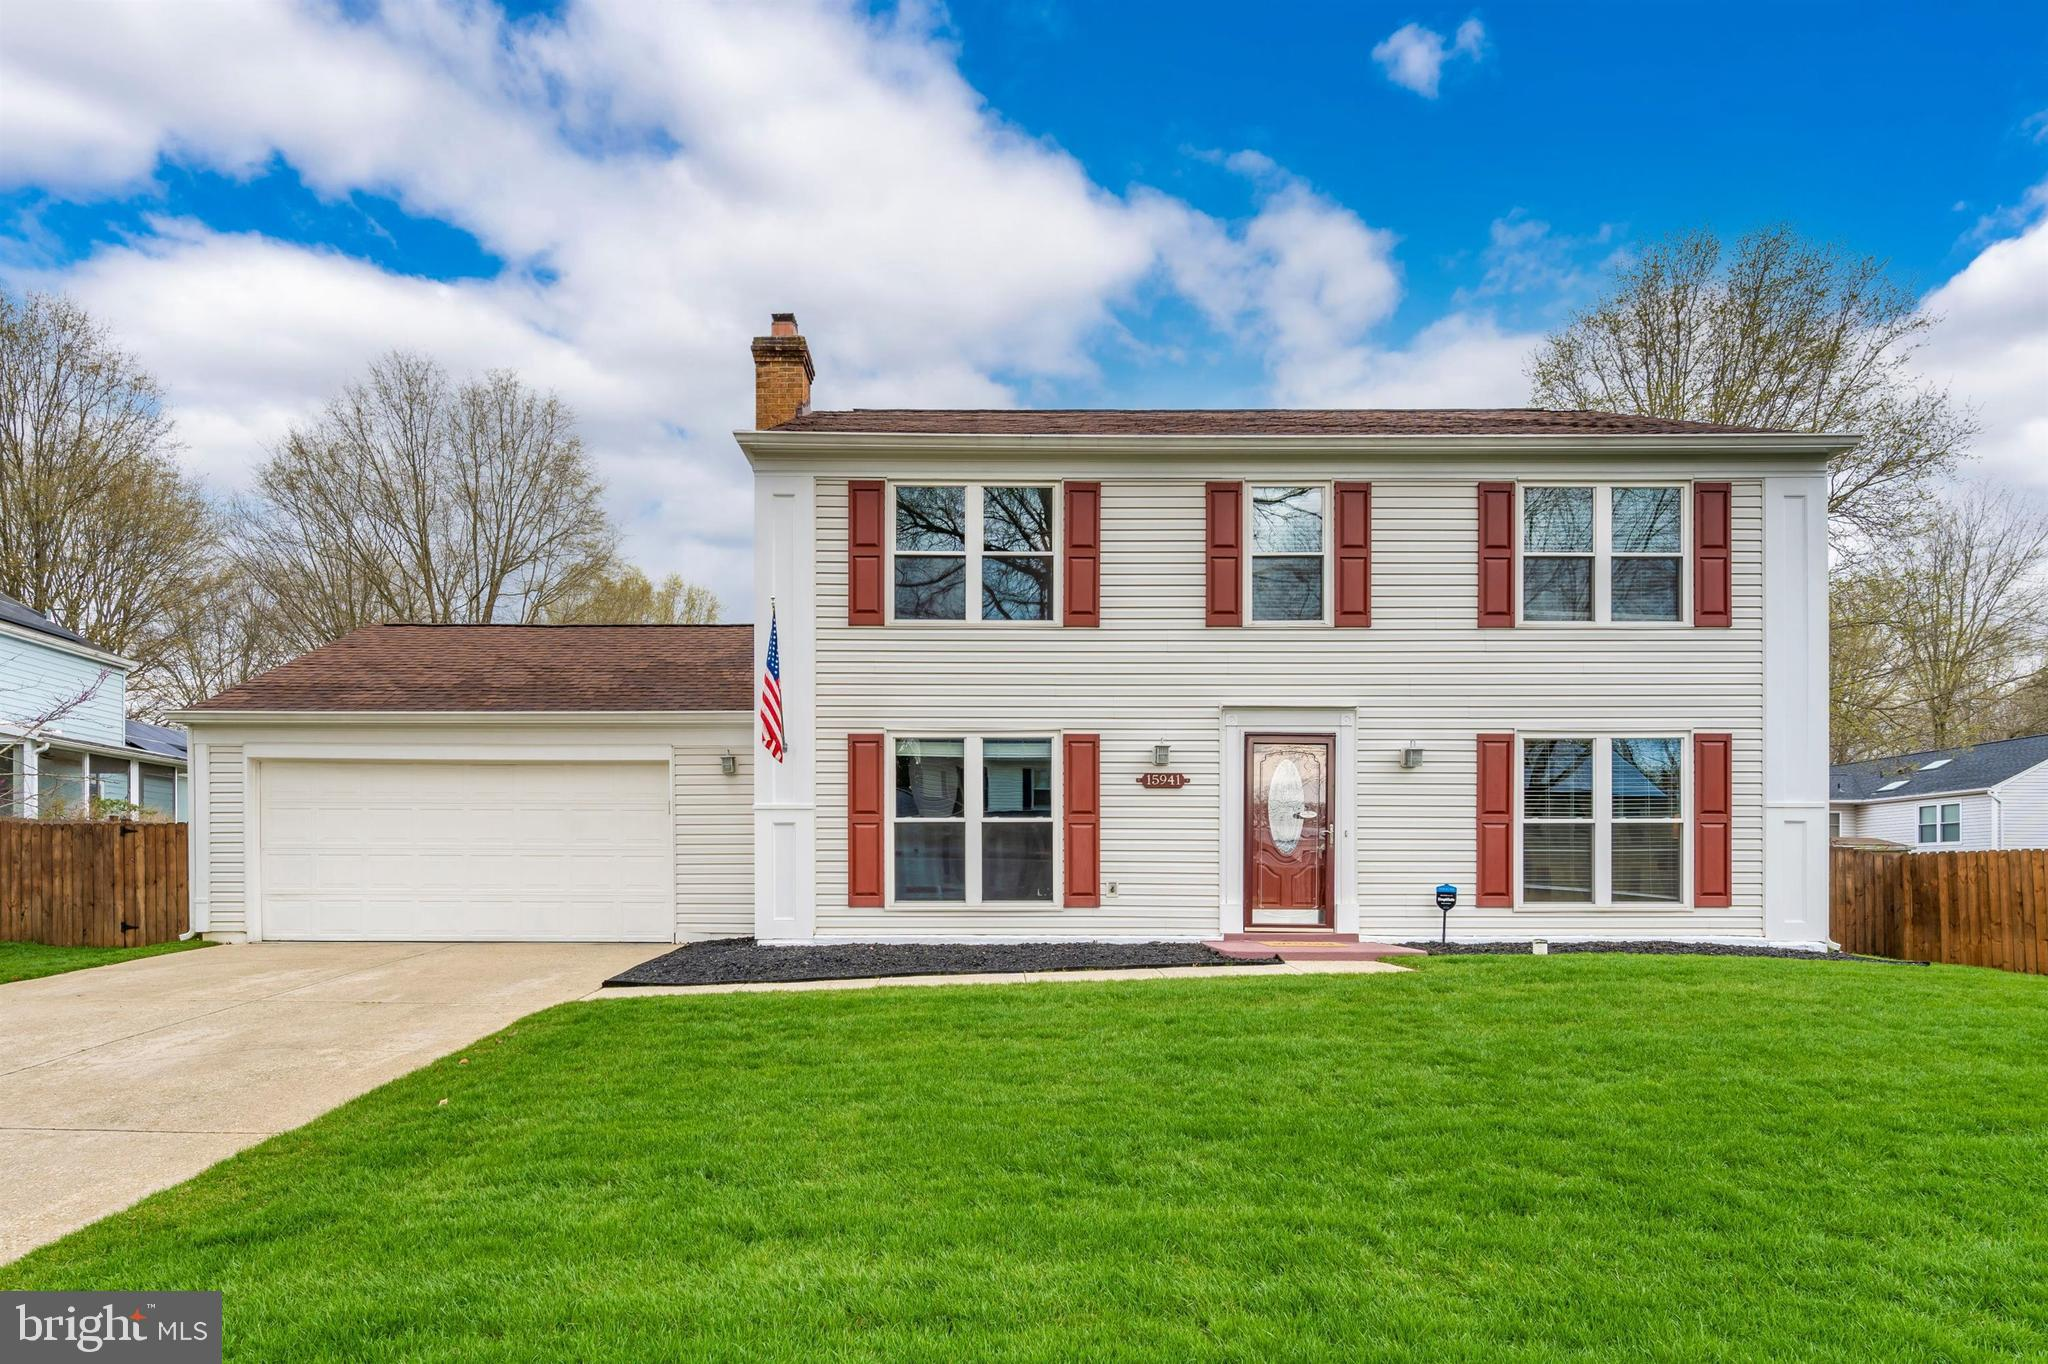 "UPDATE: HIGHEST AND BEST DUE BY MONDAY, 4/5/2021 @5PM!  Immaculate and Well Maintained 4BR, 2.5BA with 2-Car Garage for sale in Bowie!  This is one of those ""Honey, Stop the Car"" moments!!  As you drive up, you can't help but notice the curb appeal on this home - gorgeous yard with lush green grass surrounding the house. This home includes a formal living room and separate dining room with engineered hardwood floors that open to an incredible screened-in porch. The kitchen has been updated with newer cabinets, stainless steel appliances and table-space for casual dining. You will also find a cozy family room with a wood-burning fireplace, powder room and laundry room on the main level.  The second level of this home includes a Master bedroom with its own private bath and walk-in closet, and three additional bedrooms with a hall bath to share! Your beautiful fenced-in (2015) backyard is complete with a trex low maintenance deck (2016), your very own greenhouse for extra outdoor storage, 8x8 shed (2016), an underground sprinkler system (2016), mounted solar security lights (2020) and an emergency power hookup for a future generator (2017)! The owners have taken great care of this beauty and put in over 120k in renovations and upgrades throughout the years, which includes the roof (2018), windows, heating system & water heater (2011) - just to name a few...and it definitely shows as you explore inside and out!  Open House - Saturday, April 3rd - 11am-2pm!!  Make your appointment to see it today!"